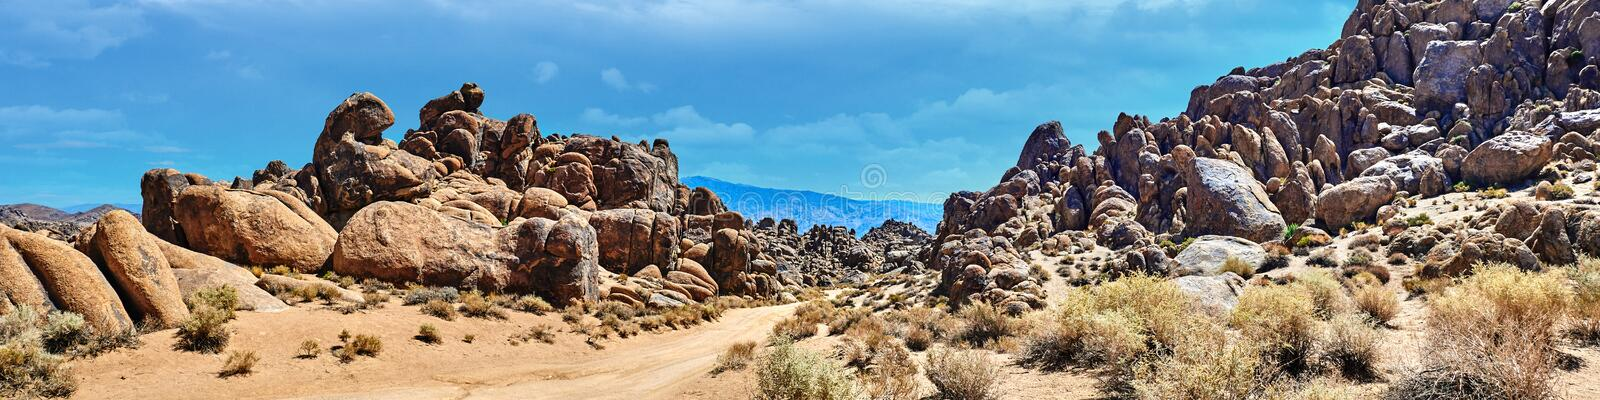 Alabama Hills, Best place to shoot westerns royalty free stock photo